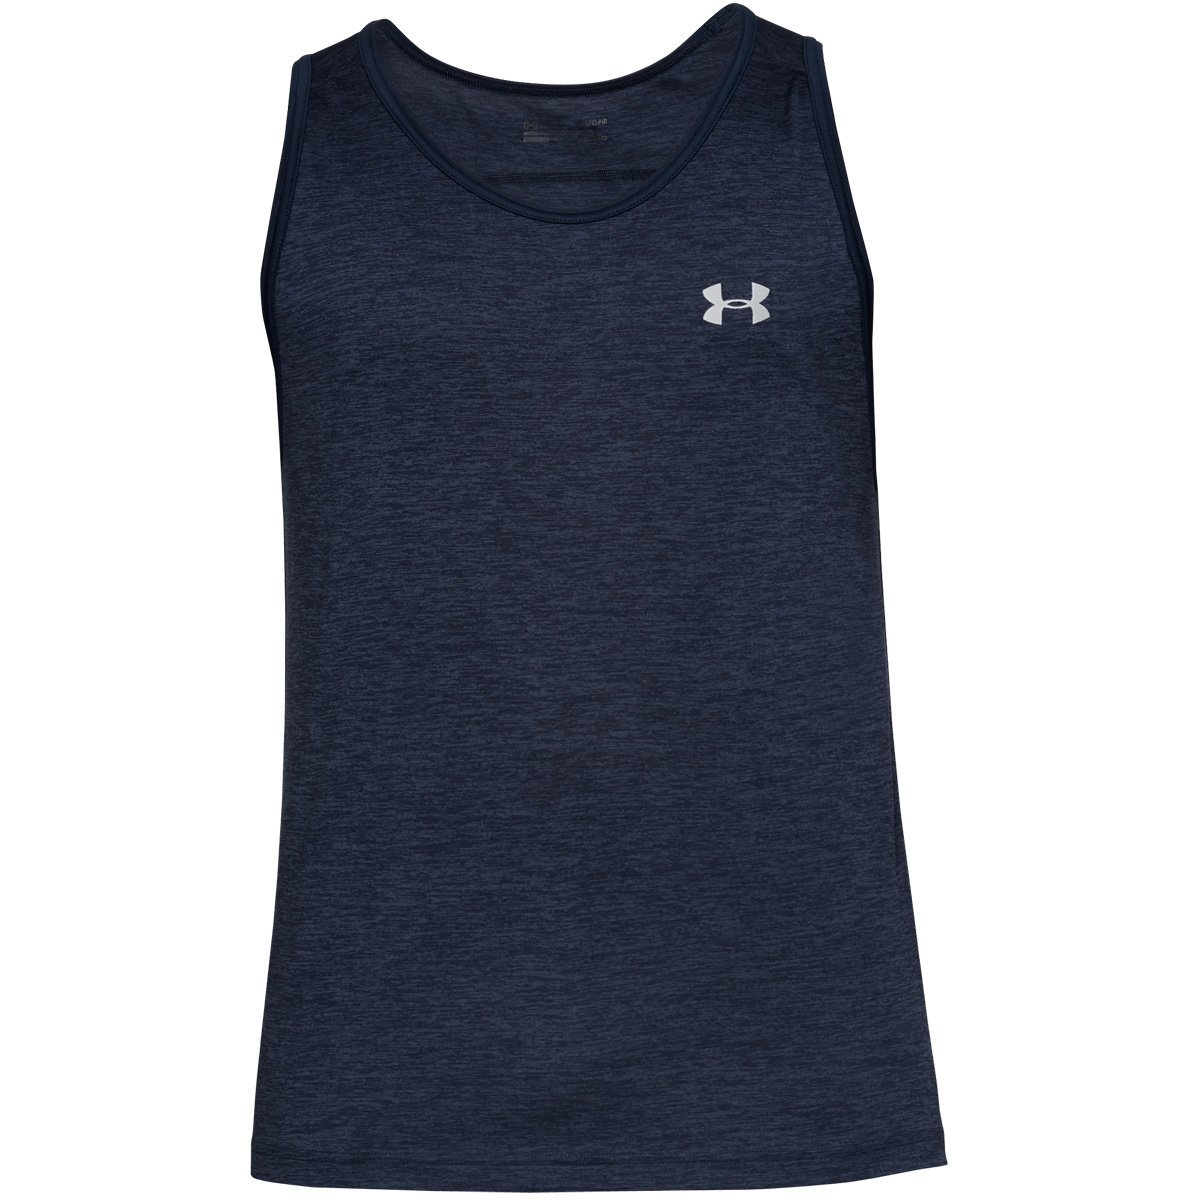 Under Armour Men's Tech Tank Top, Academy (413)/Graphite, Small